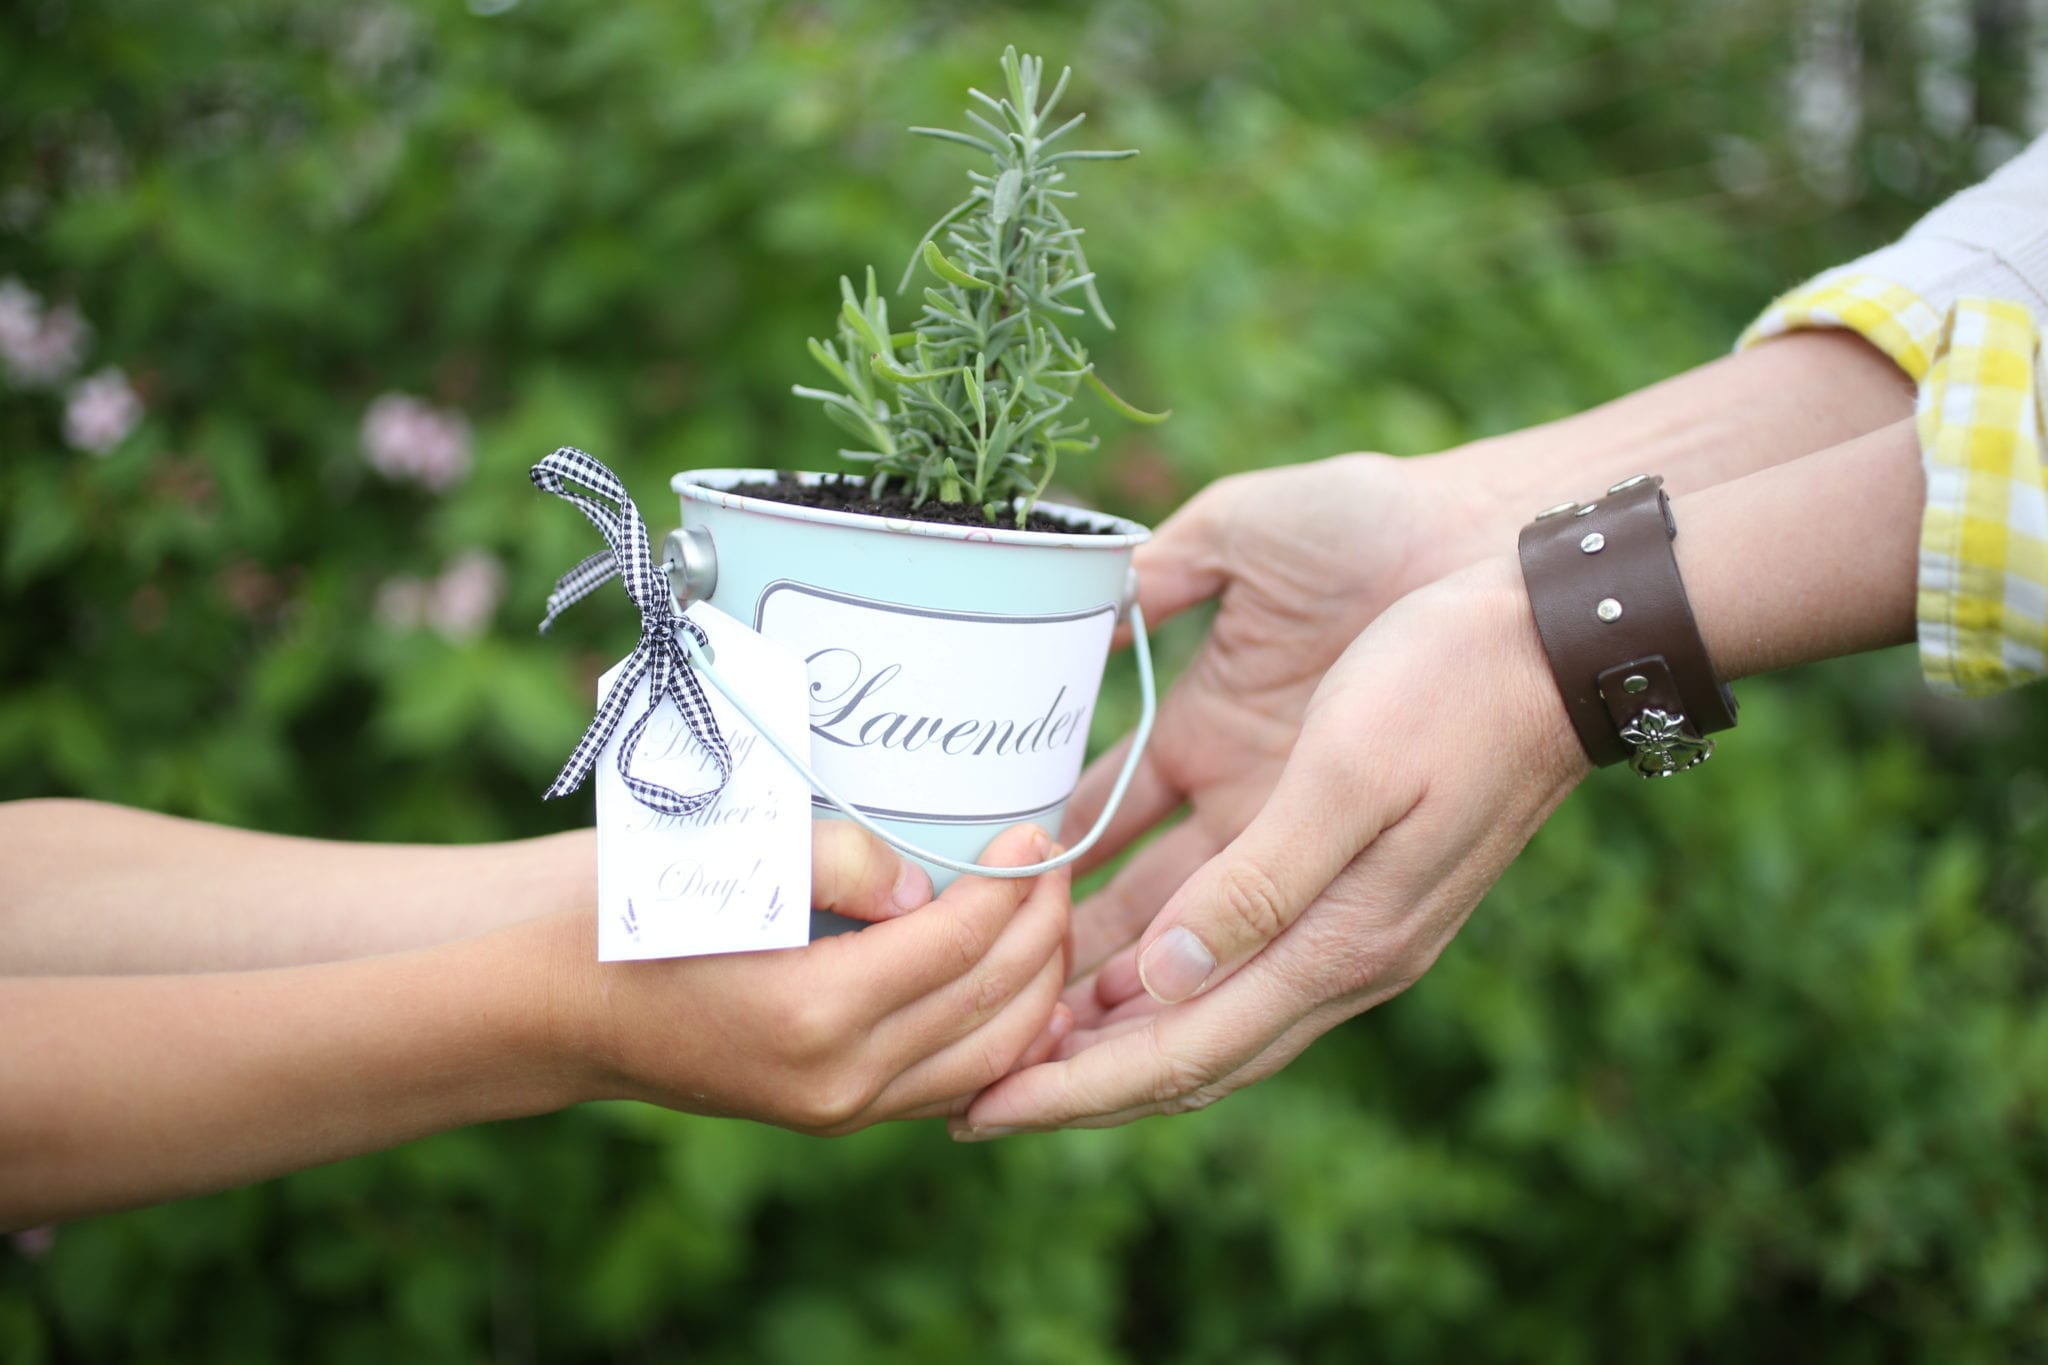 Printable Herb Labels–A Last Minute Gift Idea